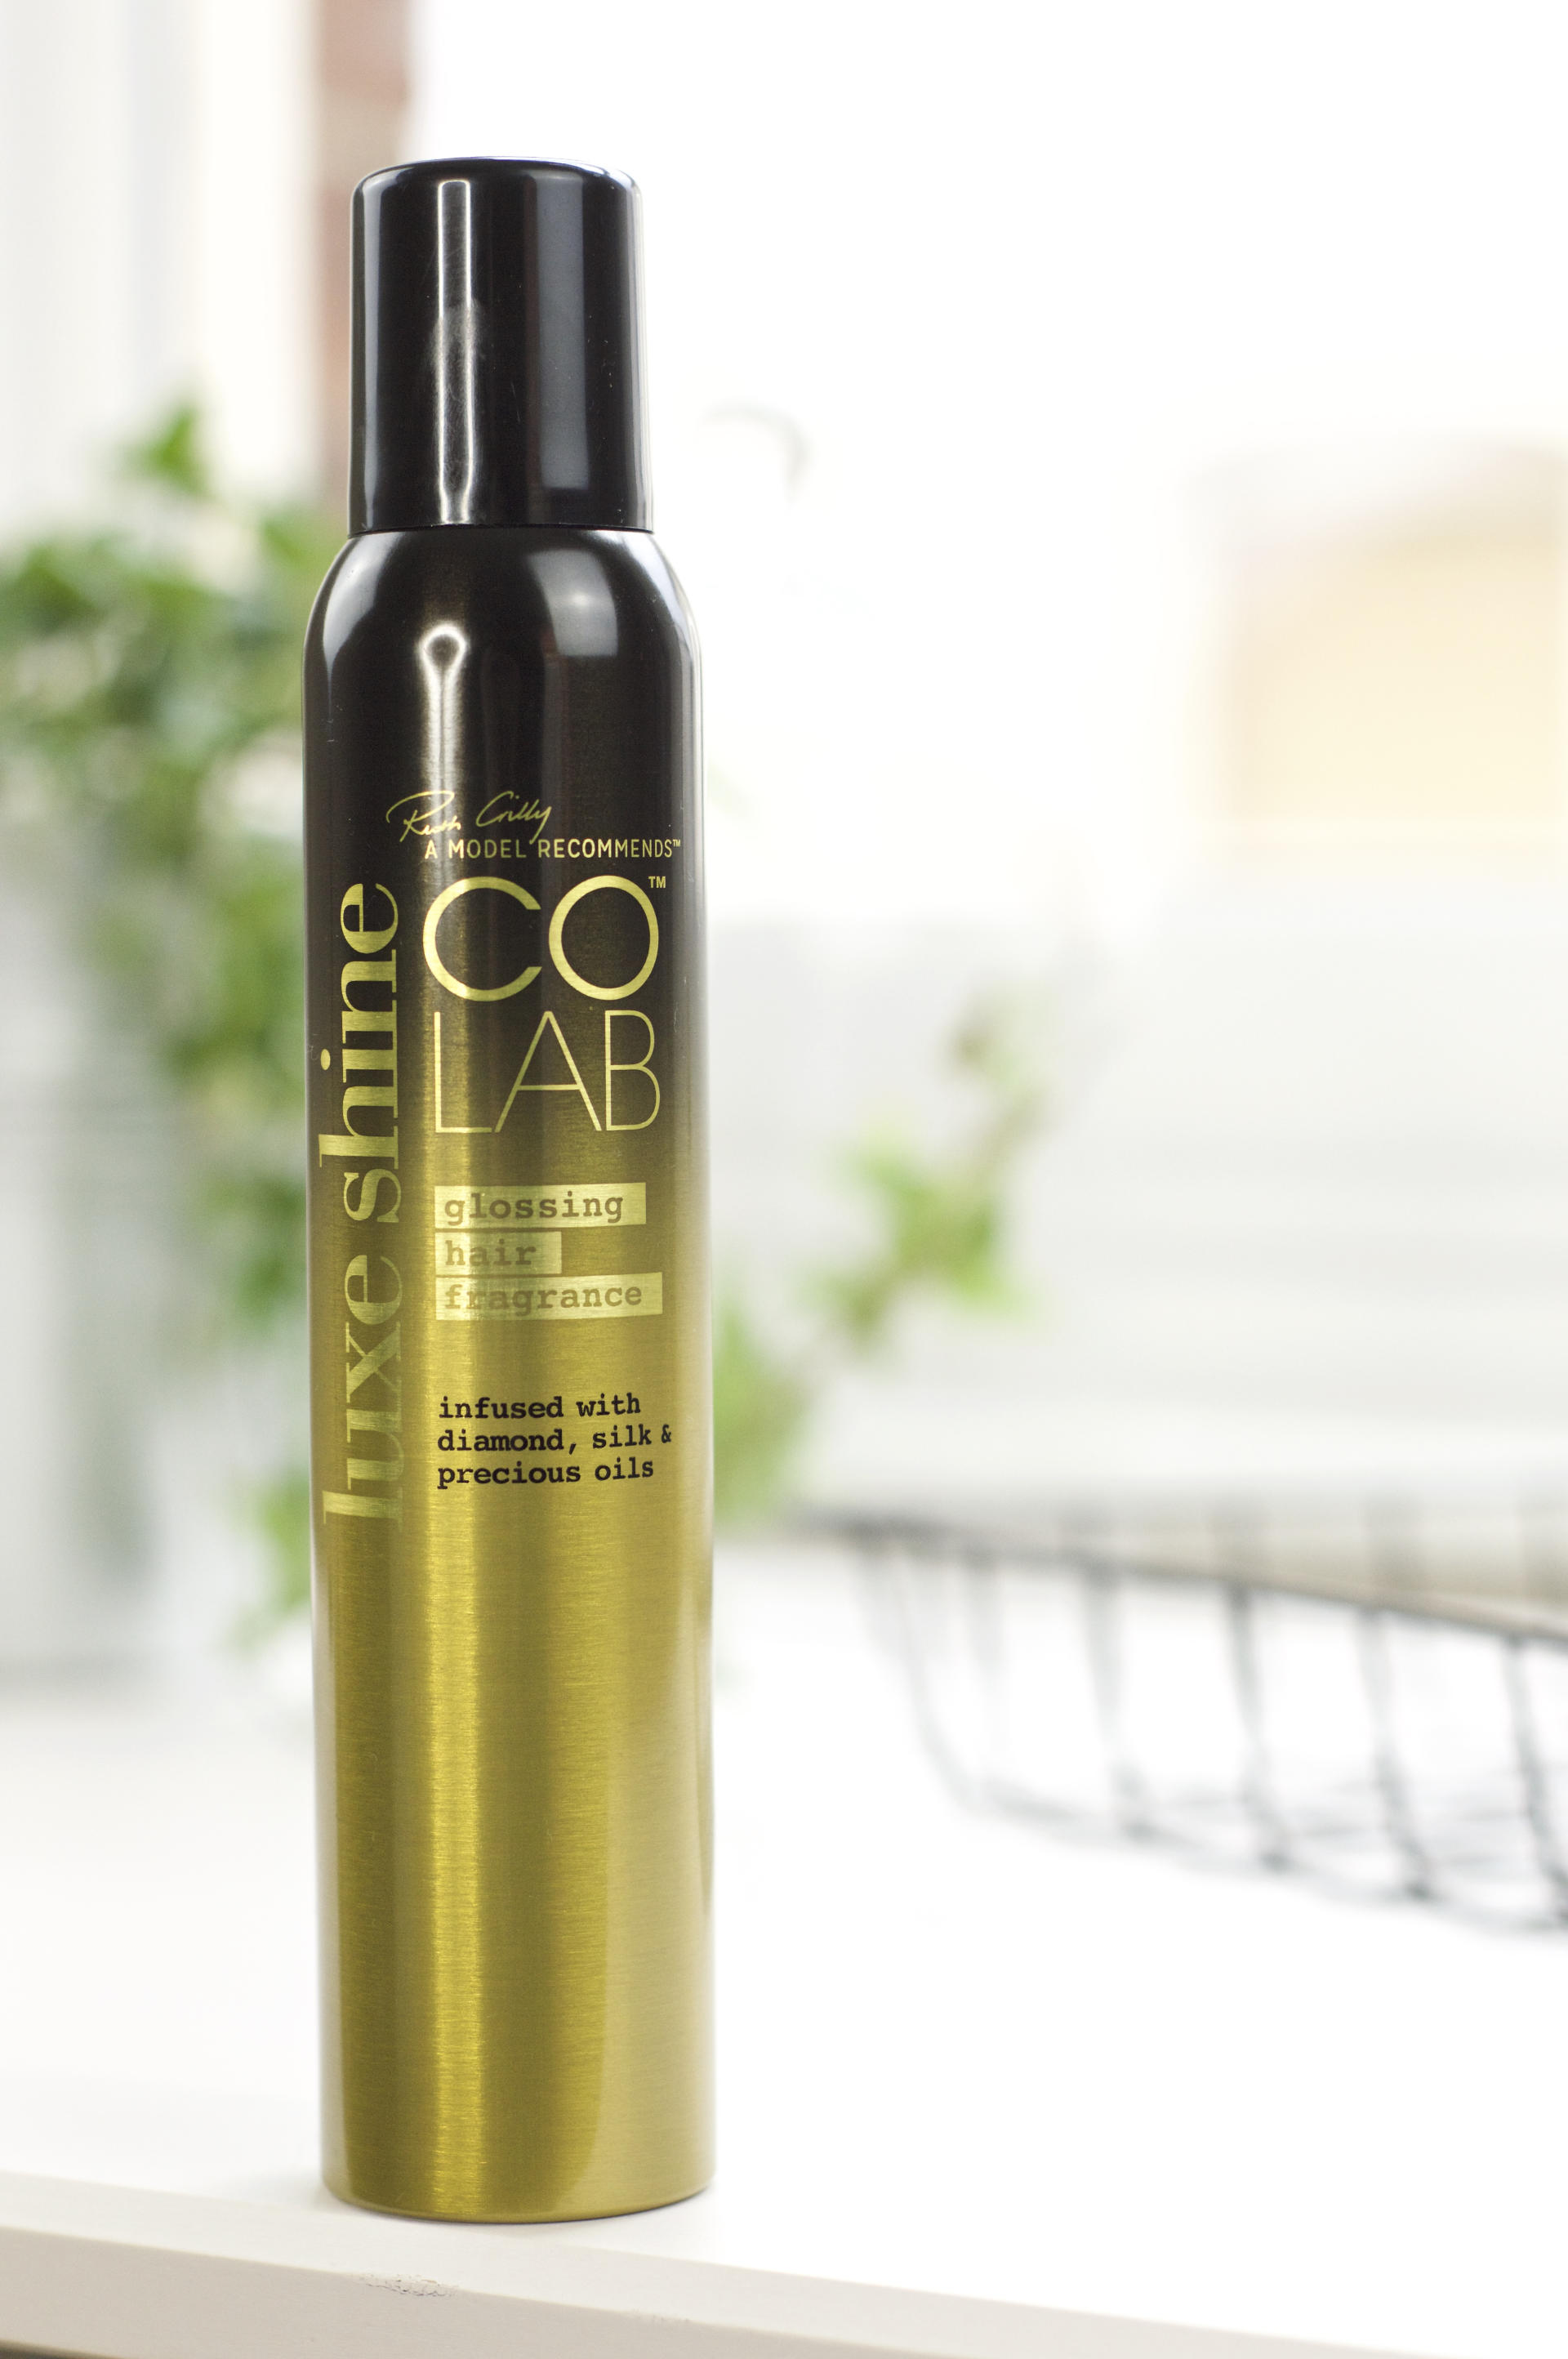 Winter Hair Saviour: The COLAB Luxe Shine Glossing Hair Fragrance